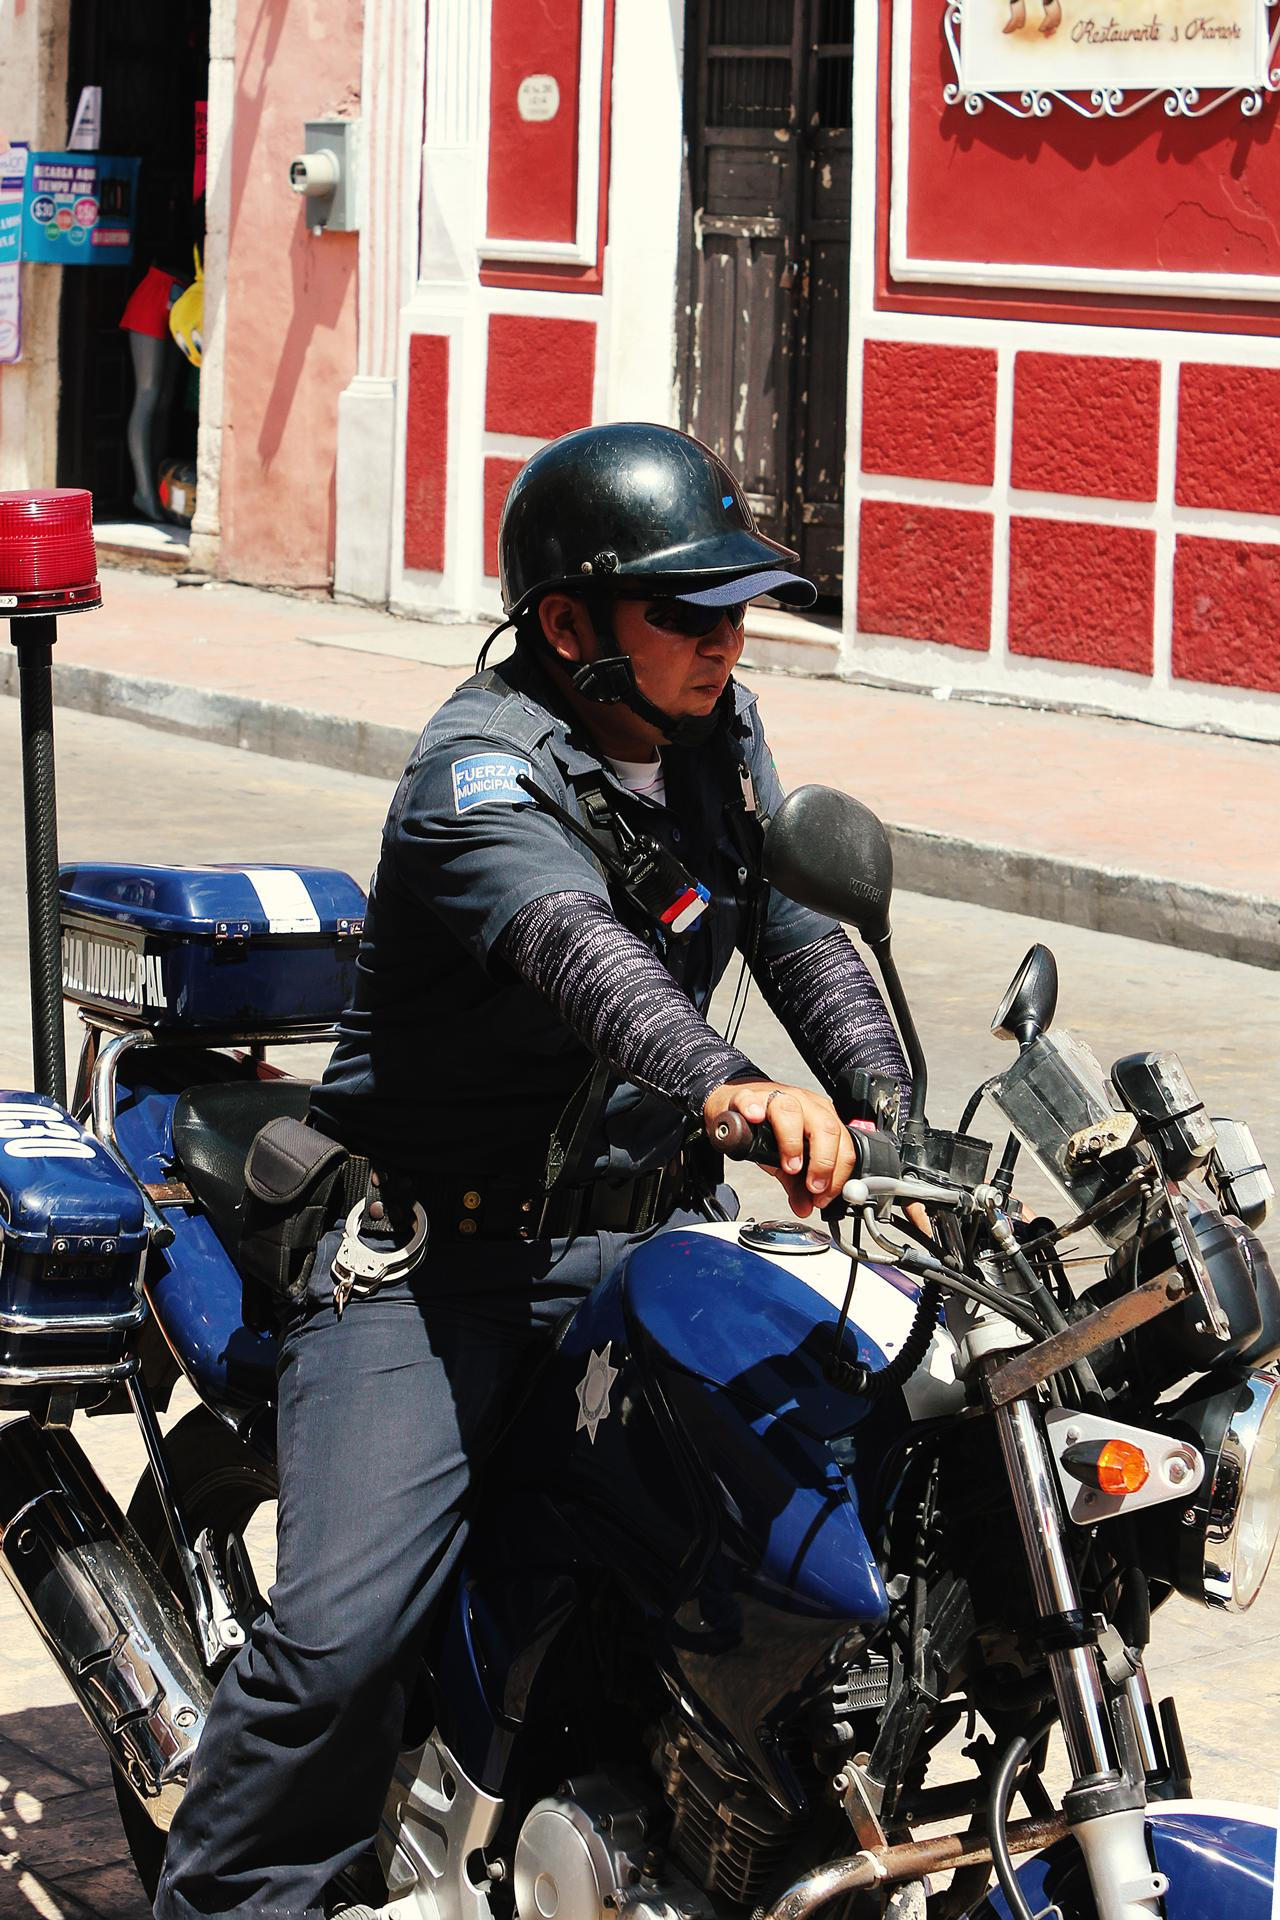 Mexiko Valladolid Bike Cop